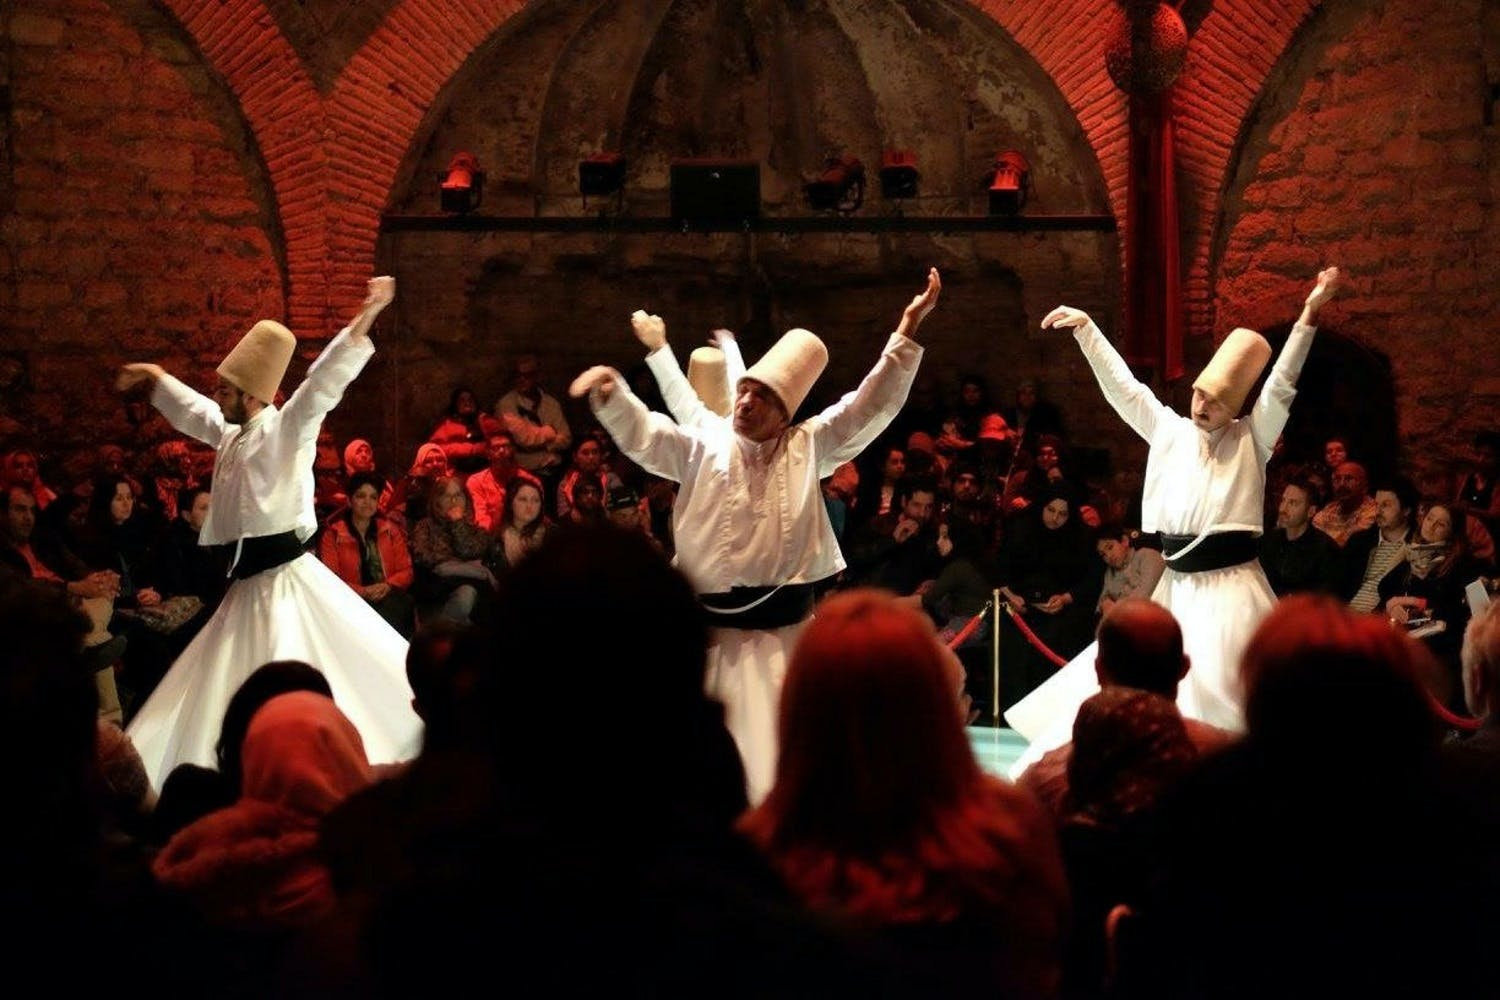 Whirling dervishes Sema ceremony show and exhibition